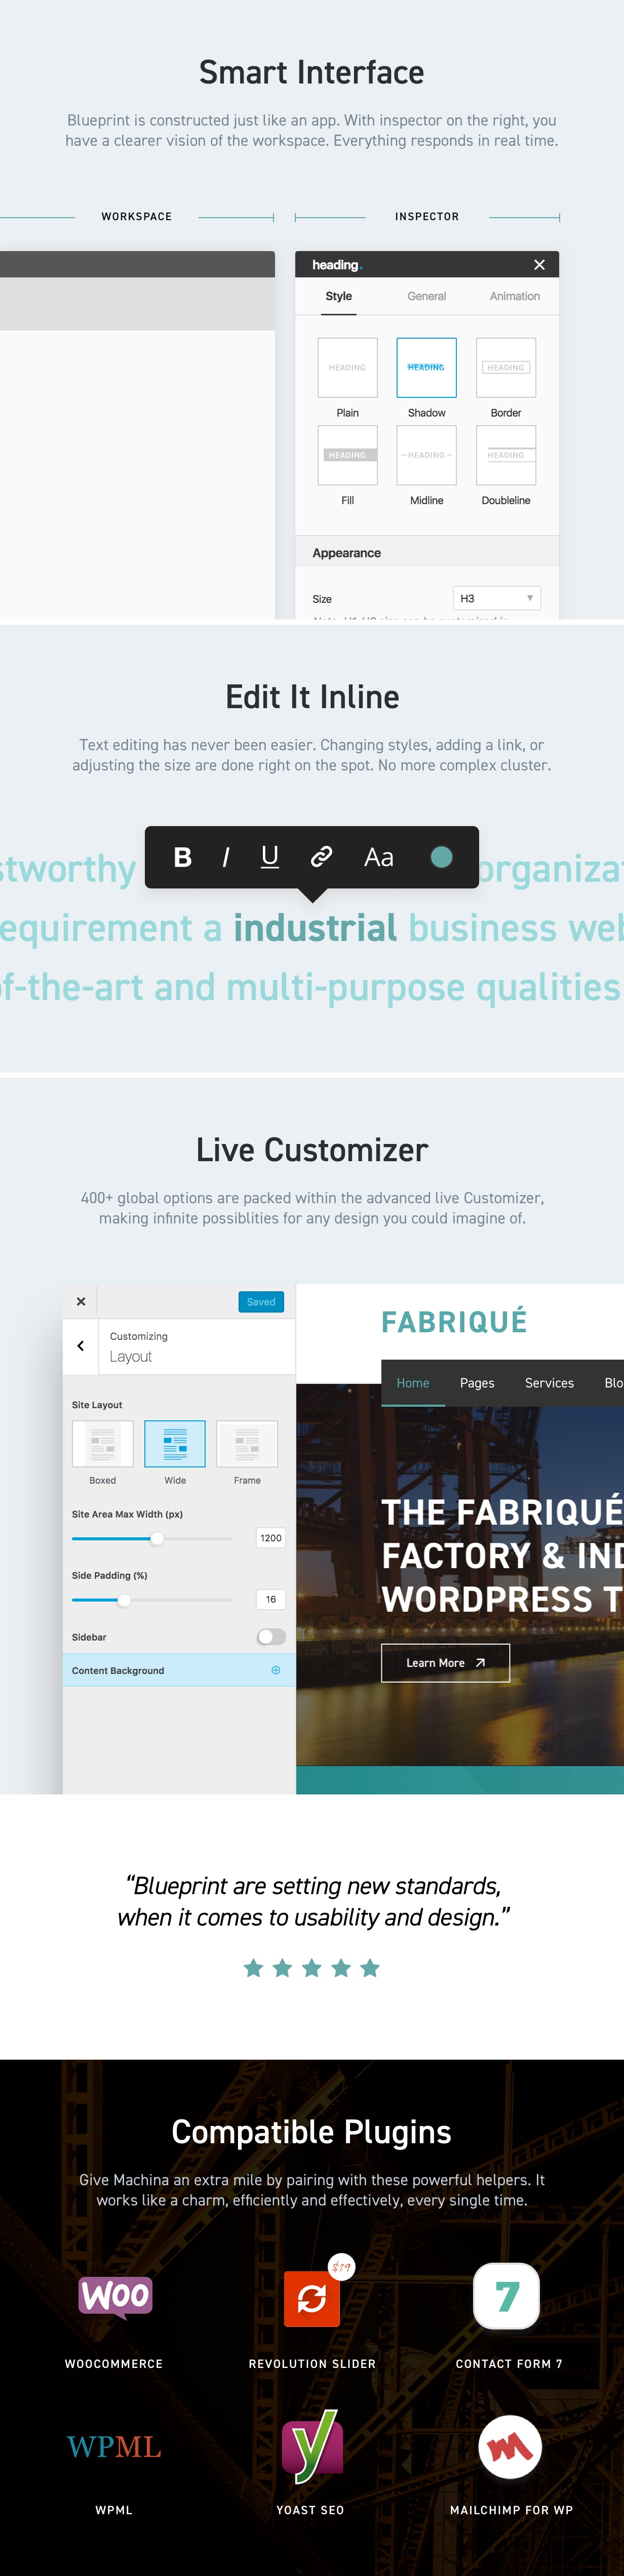 Fabriqu factory industrial business wordpress theme by twisttheme fabriqu is a state of the art multi purpose wordpress theme meticulously designed to cater to factory and manufacturing industry related websites malvernweather Image collections